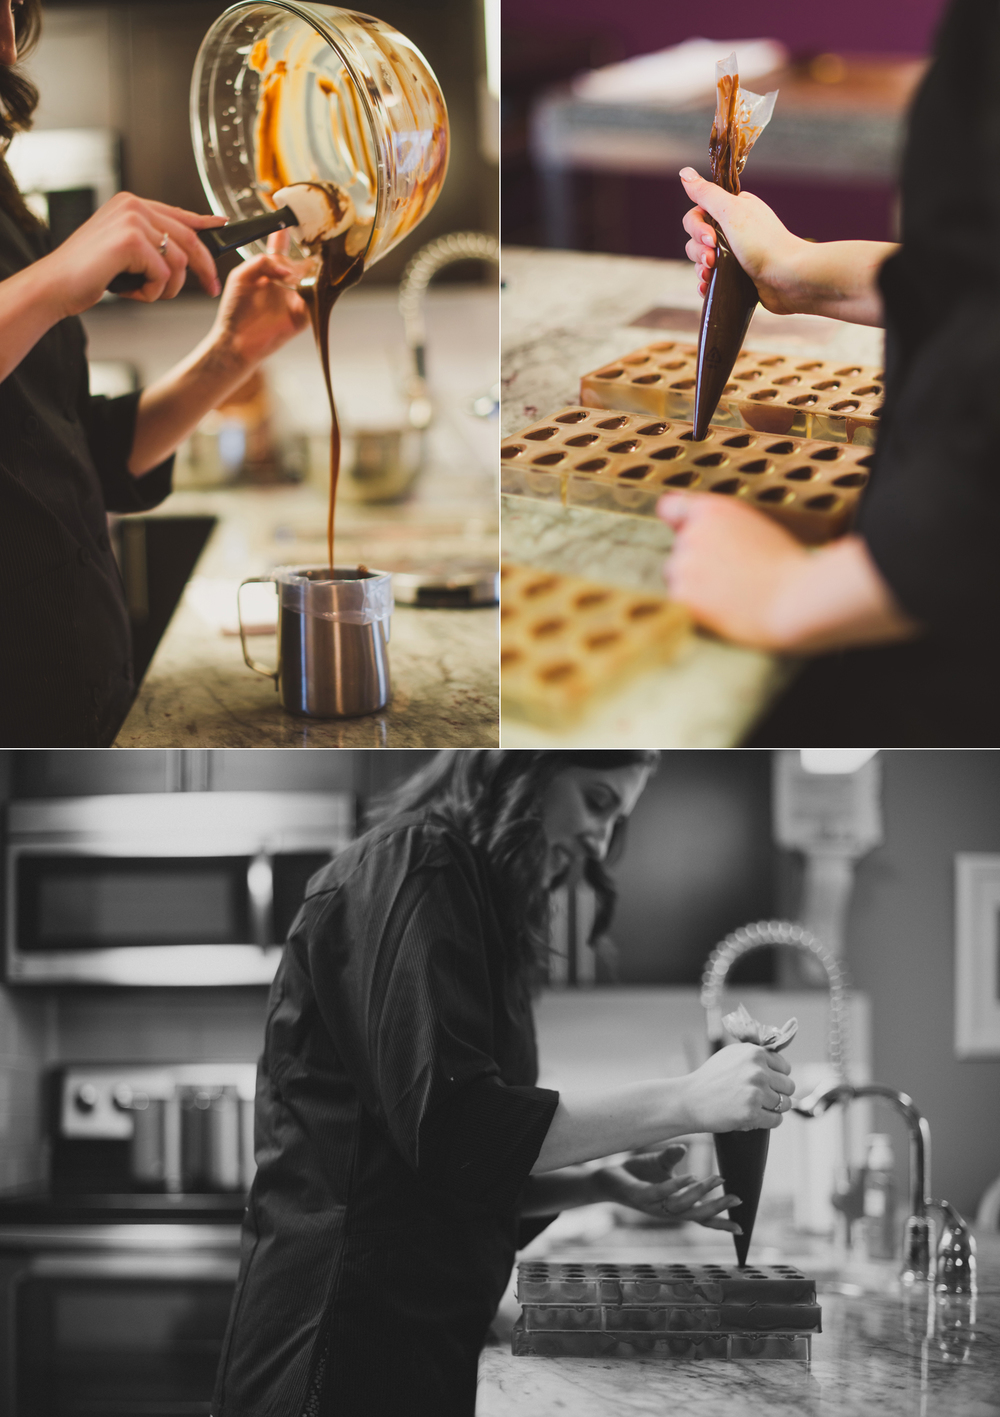 bbcollective_blog_spotlight_violetchocolatecompany_rebeccagrant_yeg_photography